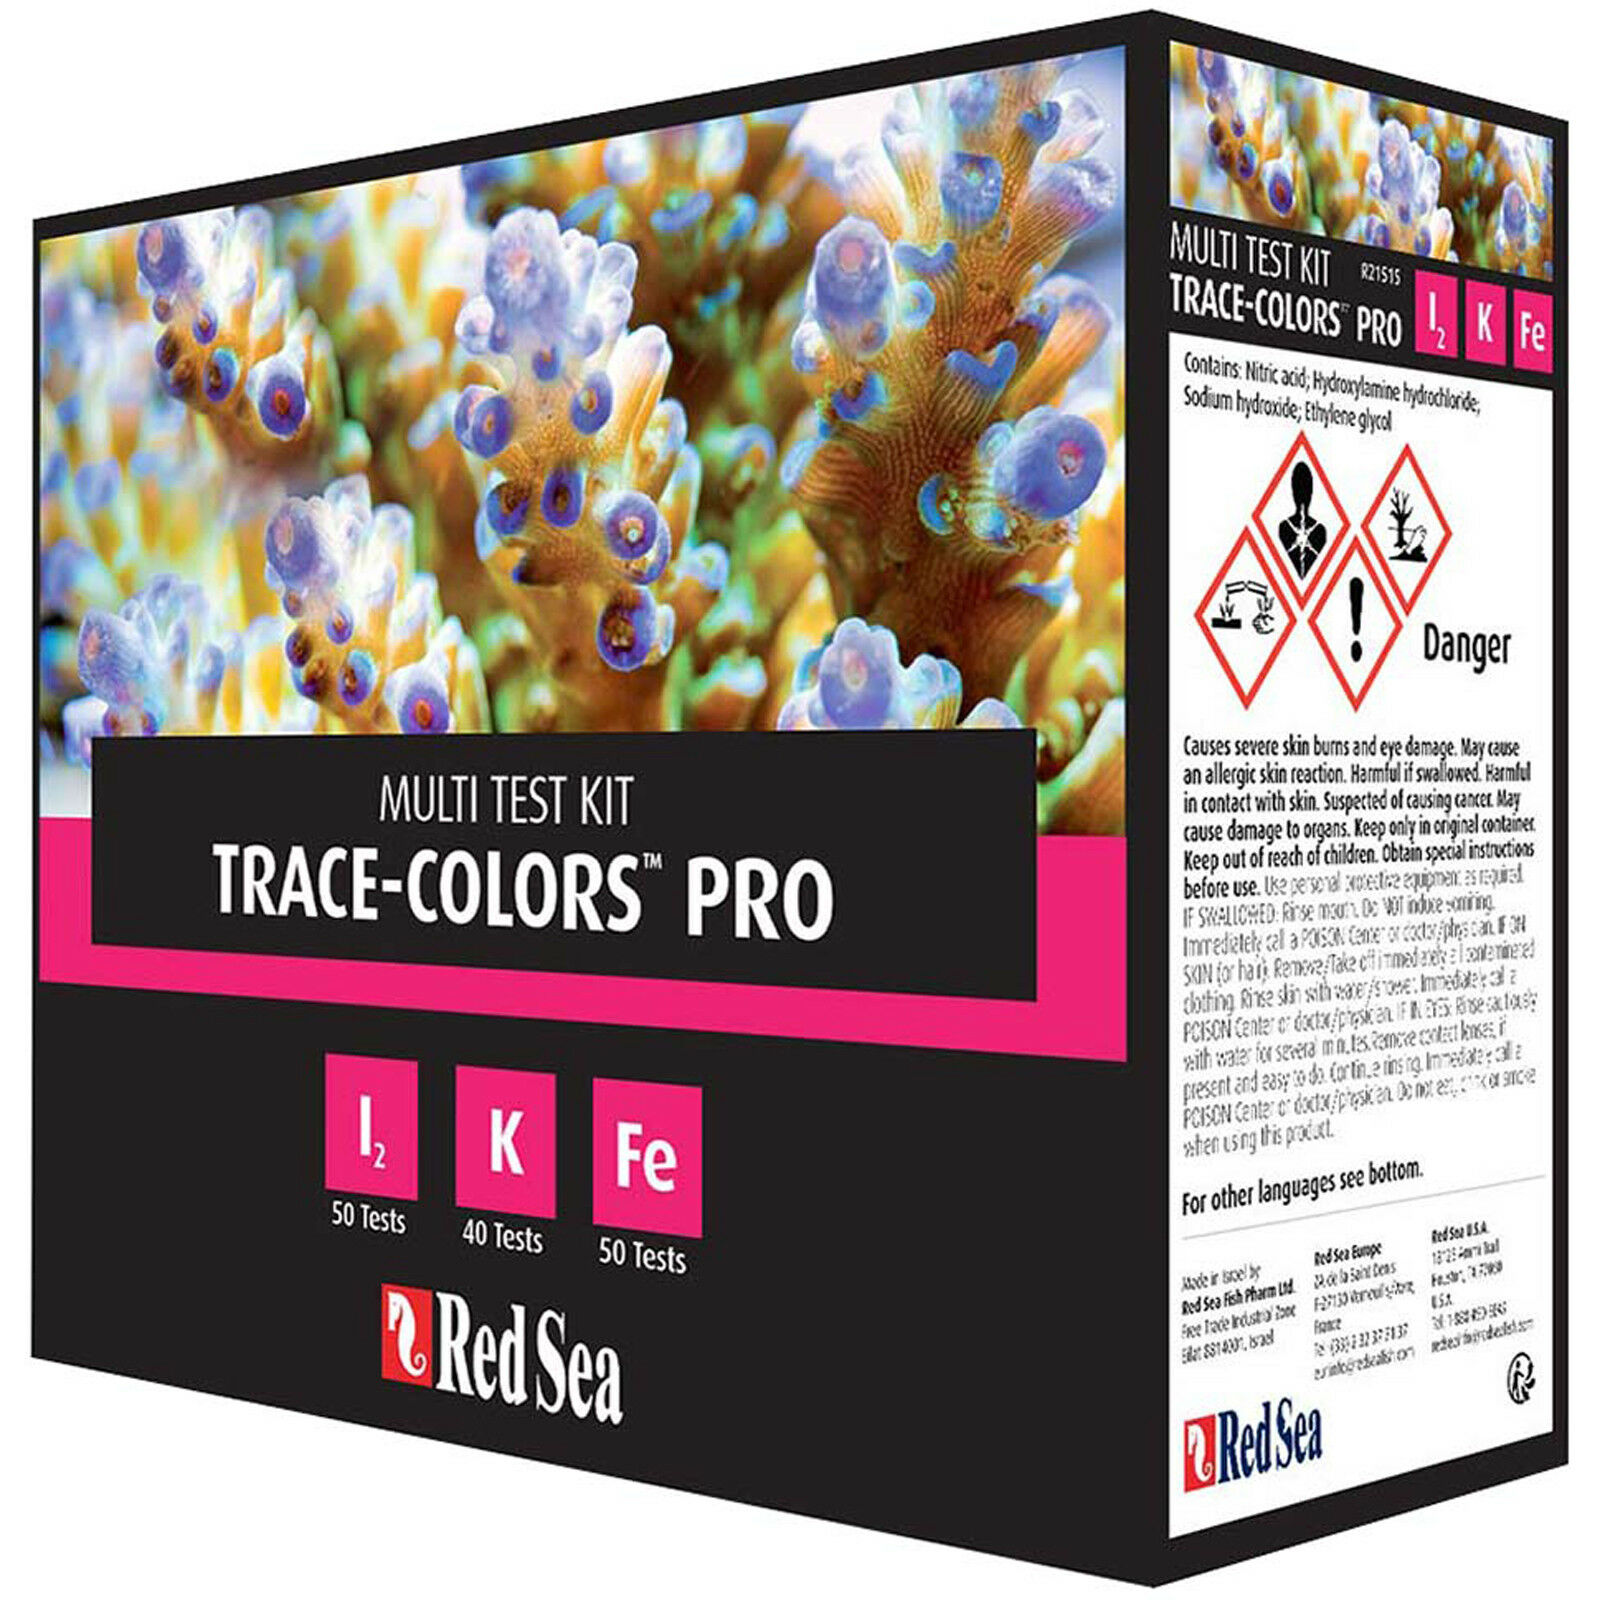 Red Sea Test Kit Reef Colores Colores Colores Pro Trace Colore Pro Test Kit Fast Free USA Shipping 8ecbbe